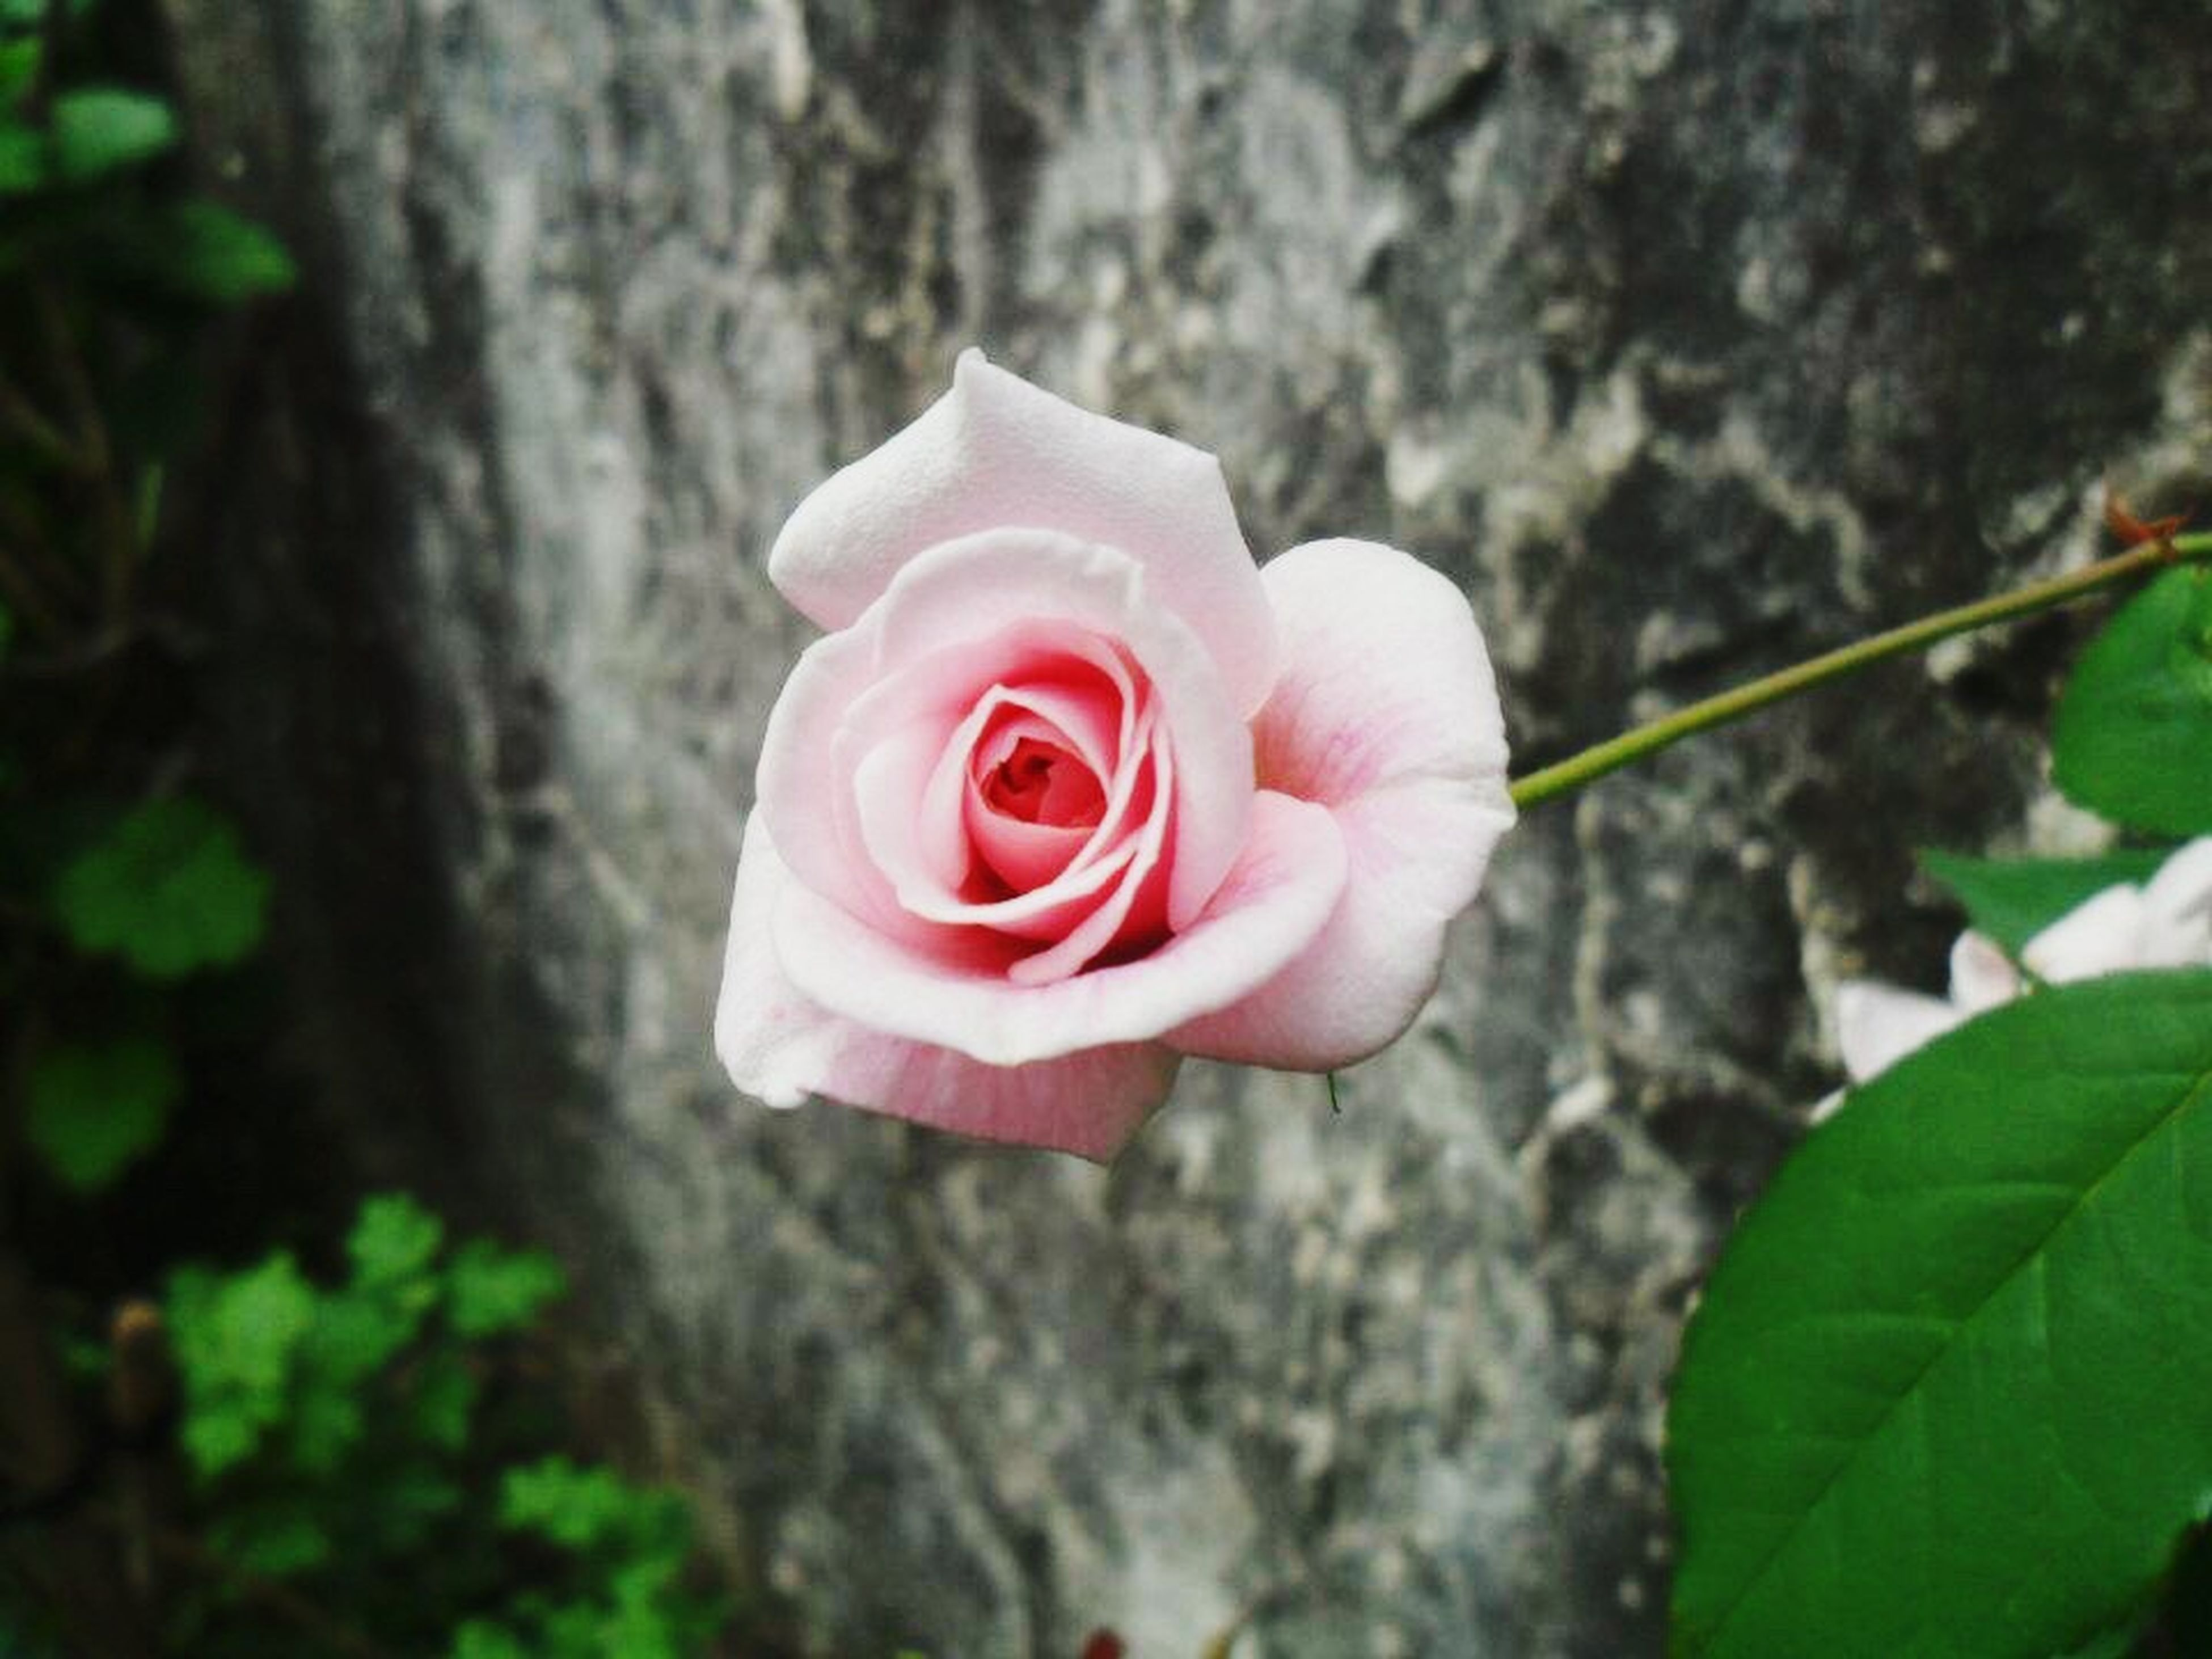 Small Rose Smallrose Small Beautiful Beauty In Nature Nature Plants Roses Nature Photography Roselife Rose - Flower Rose🌹